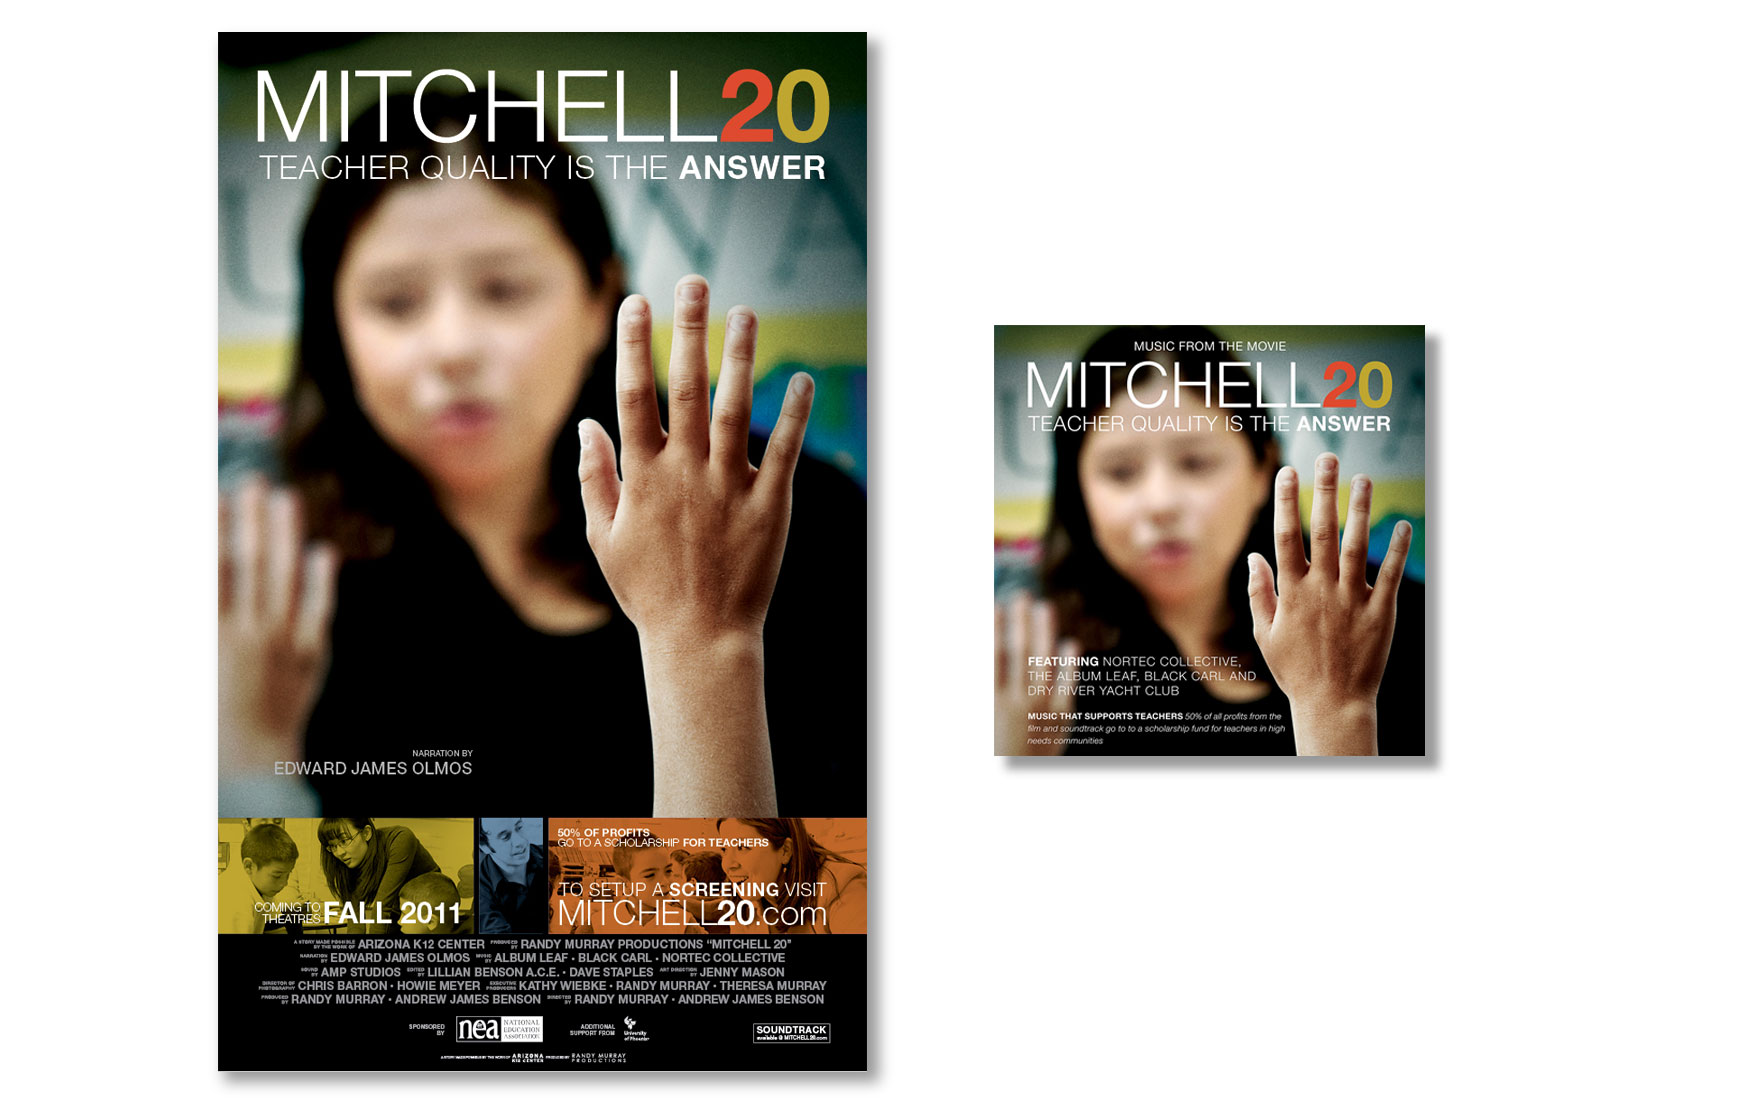 Mitchell 20 Poster and CD Cover